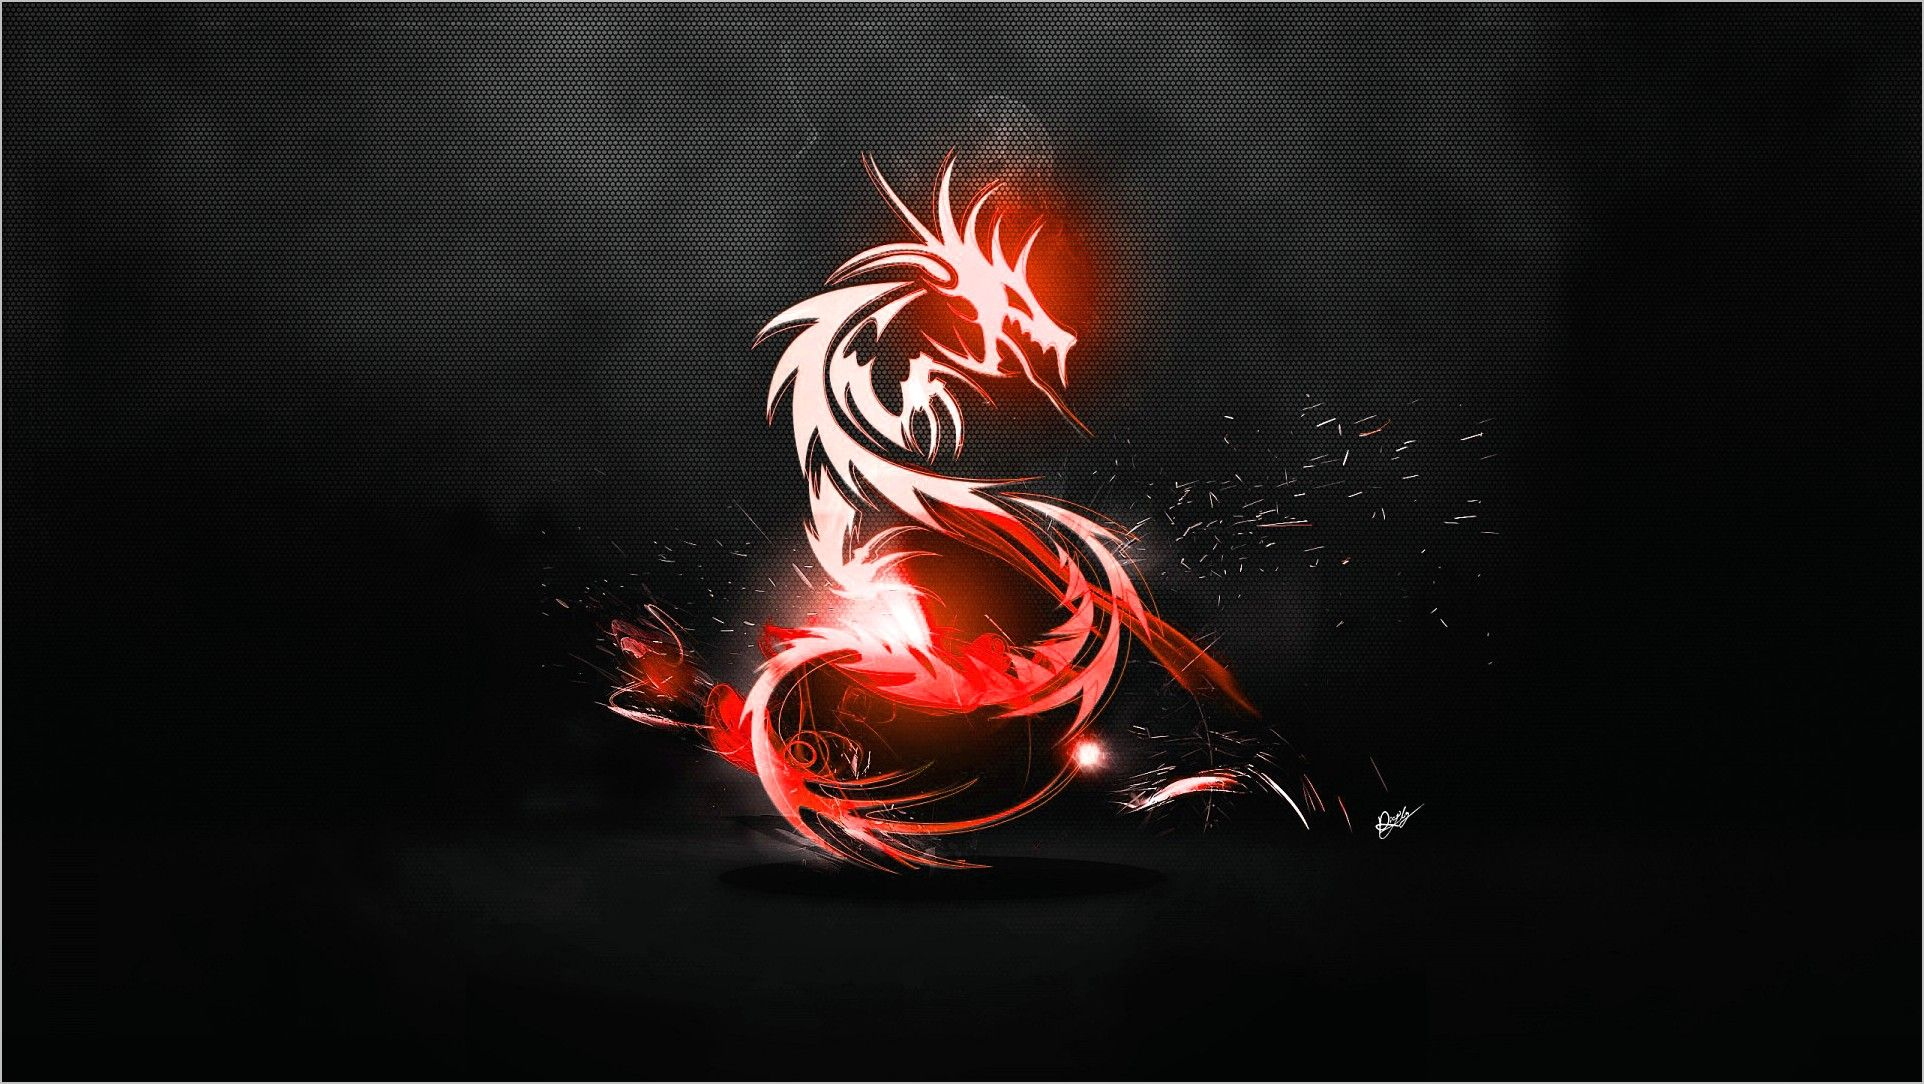 Gamer Red And Black Wallpapers 4k In 2020 Red And Black Wallpaper Dark Red Wallpaper Red Wallpaper